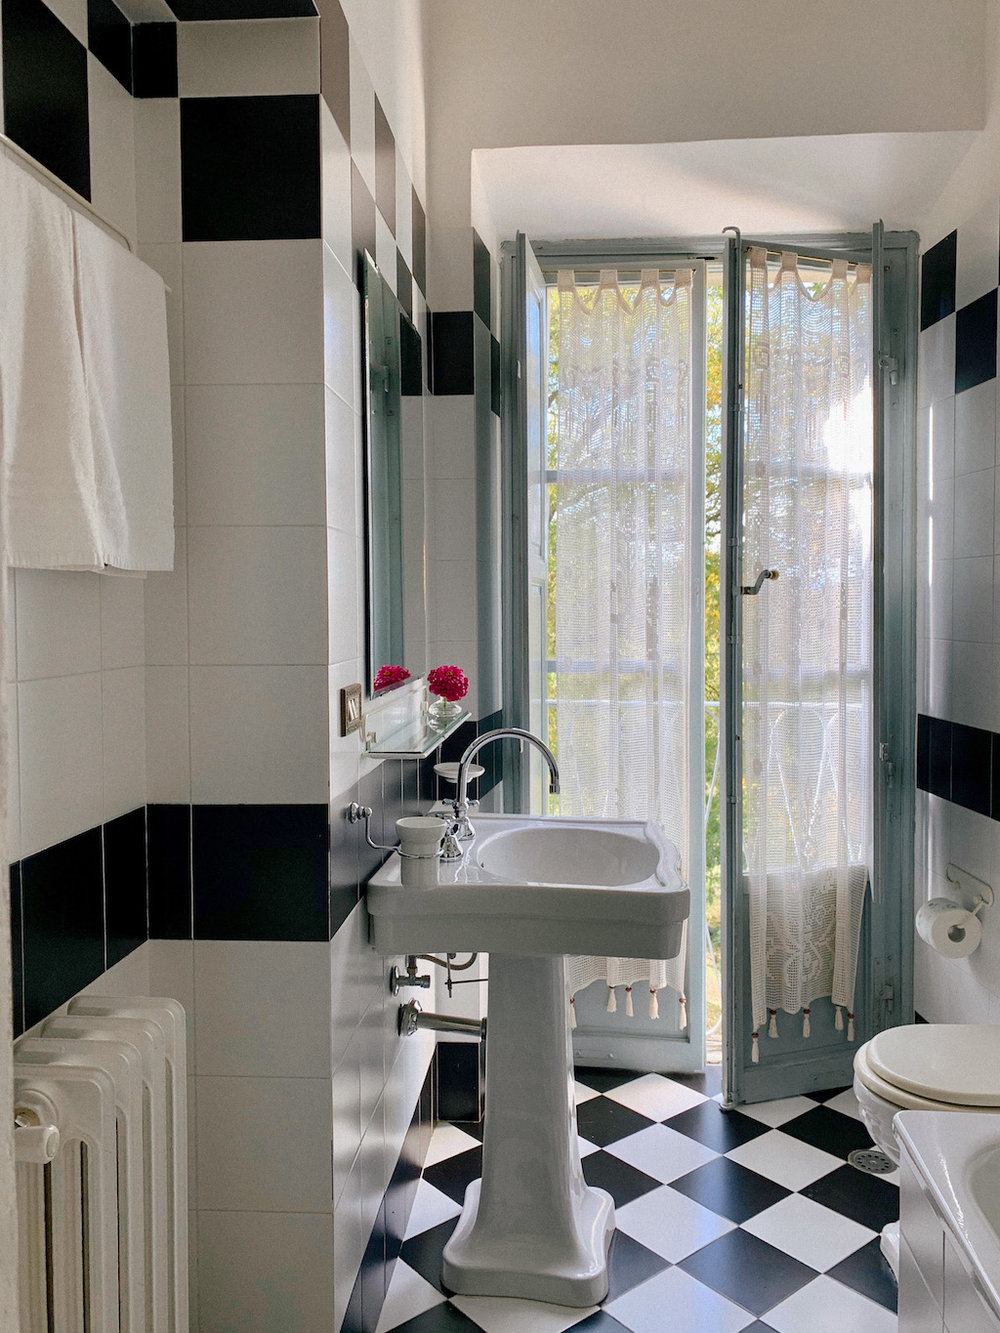 Rooms_and_bathrooms-18.jpg